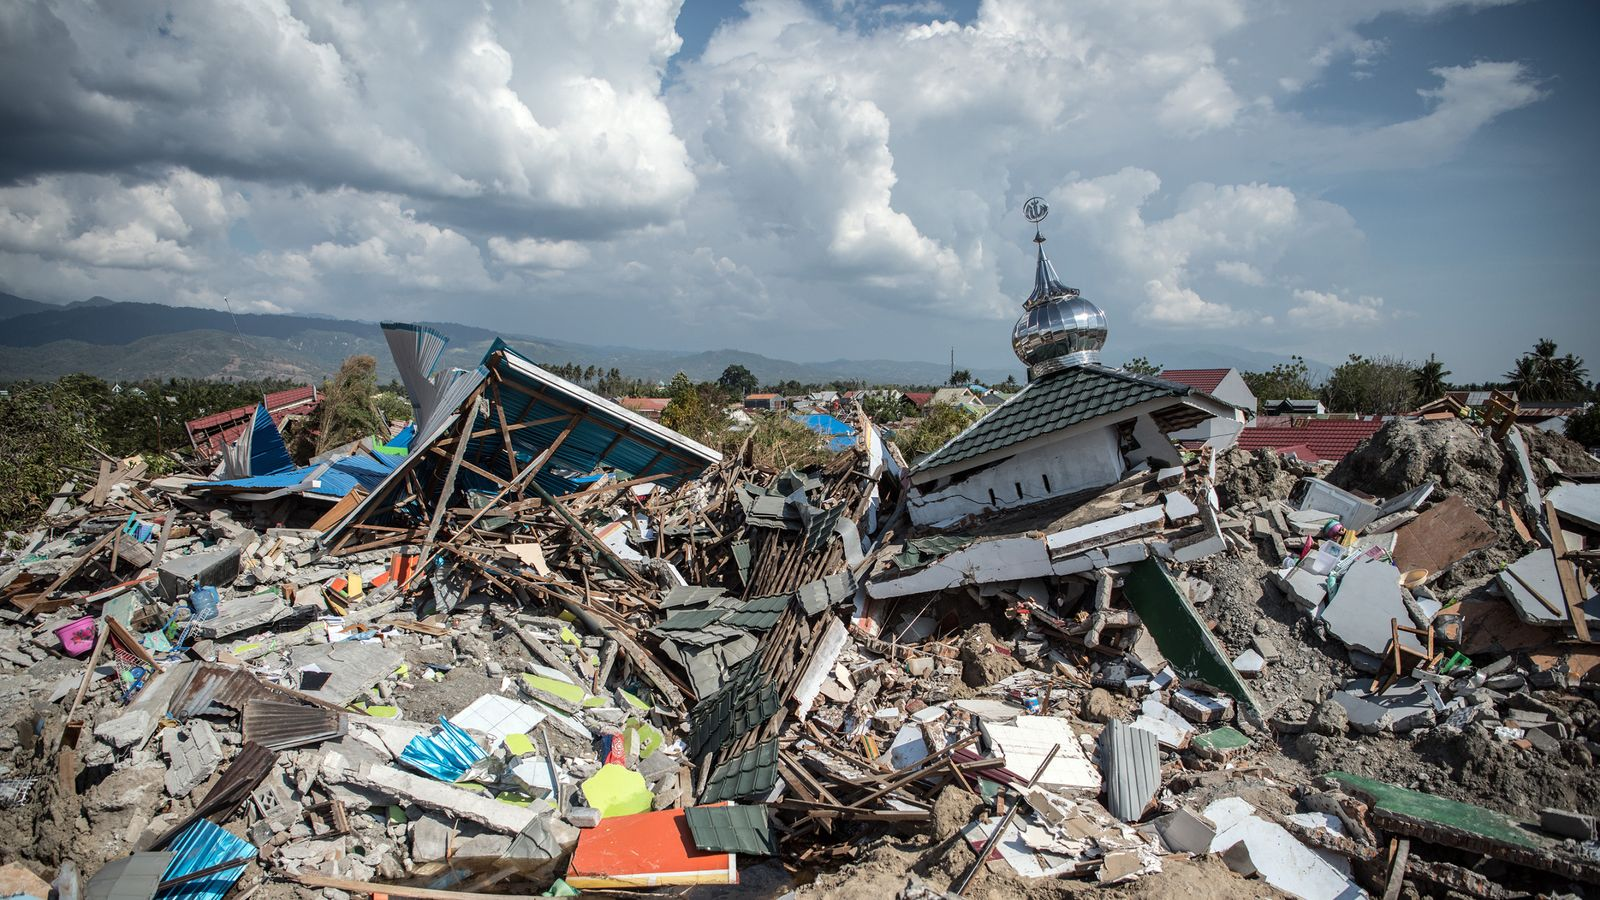 Lootings Prison Breaks And Is Aid Route To Tsunami Zone